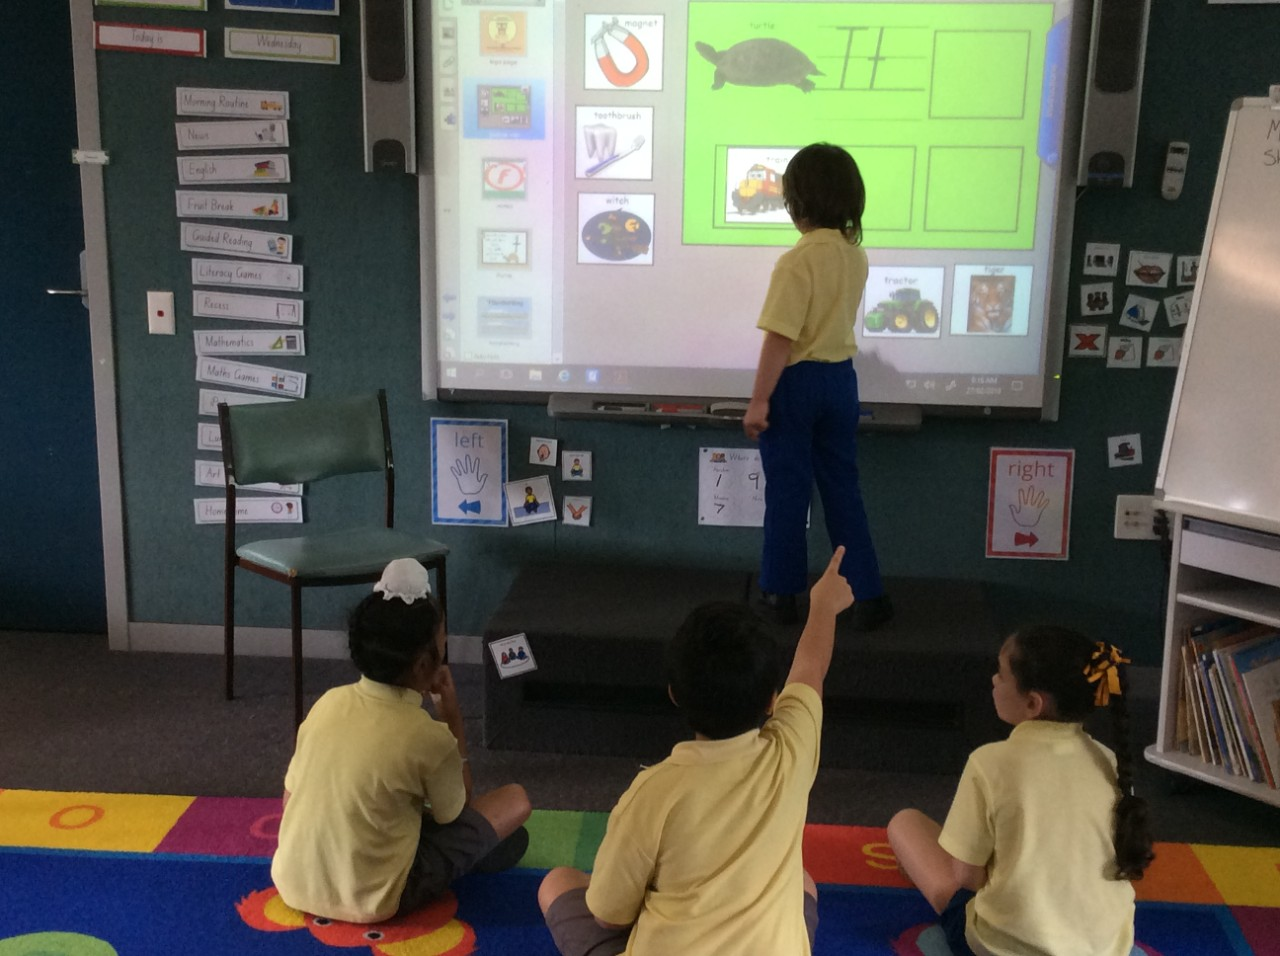 Students using the interactive whiteboard